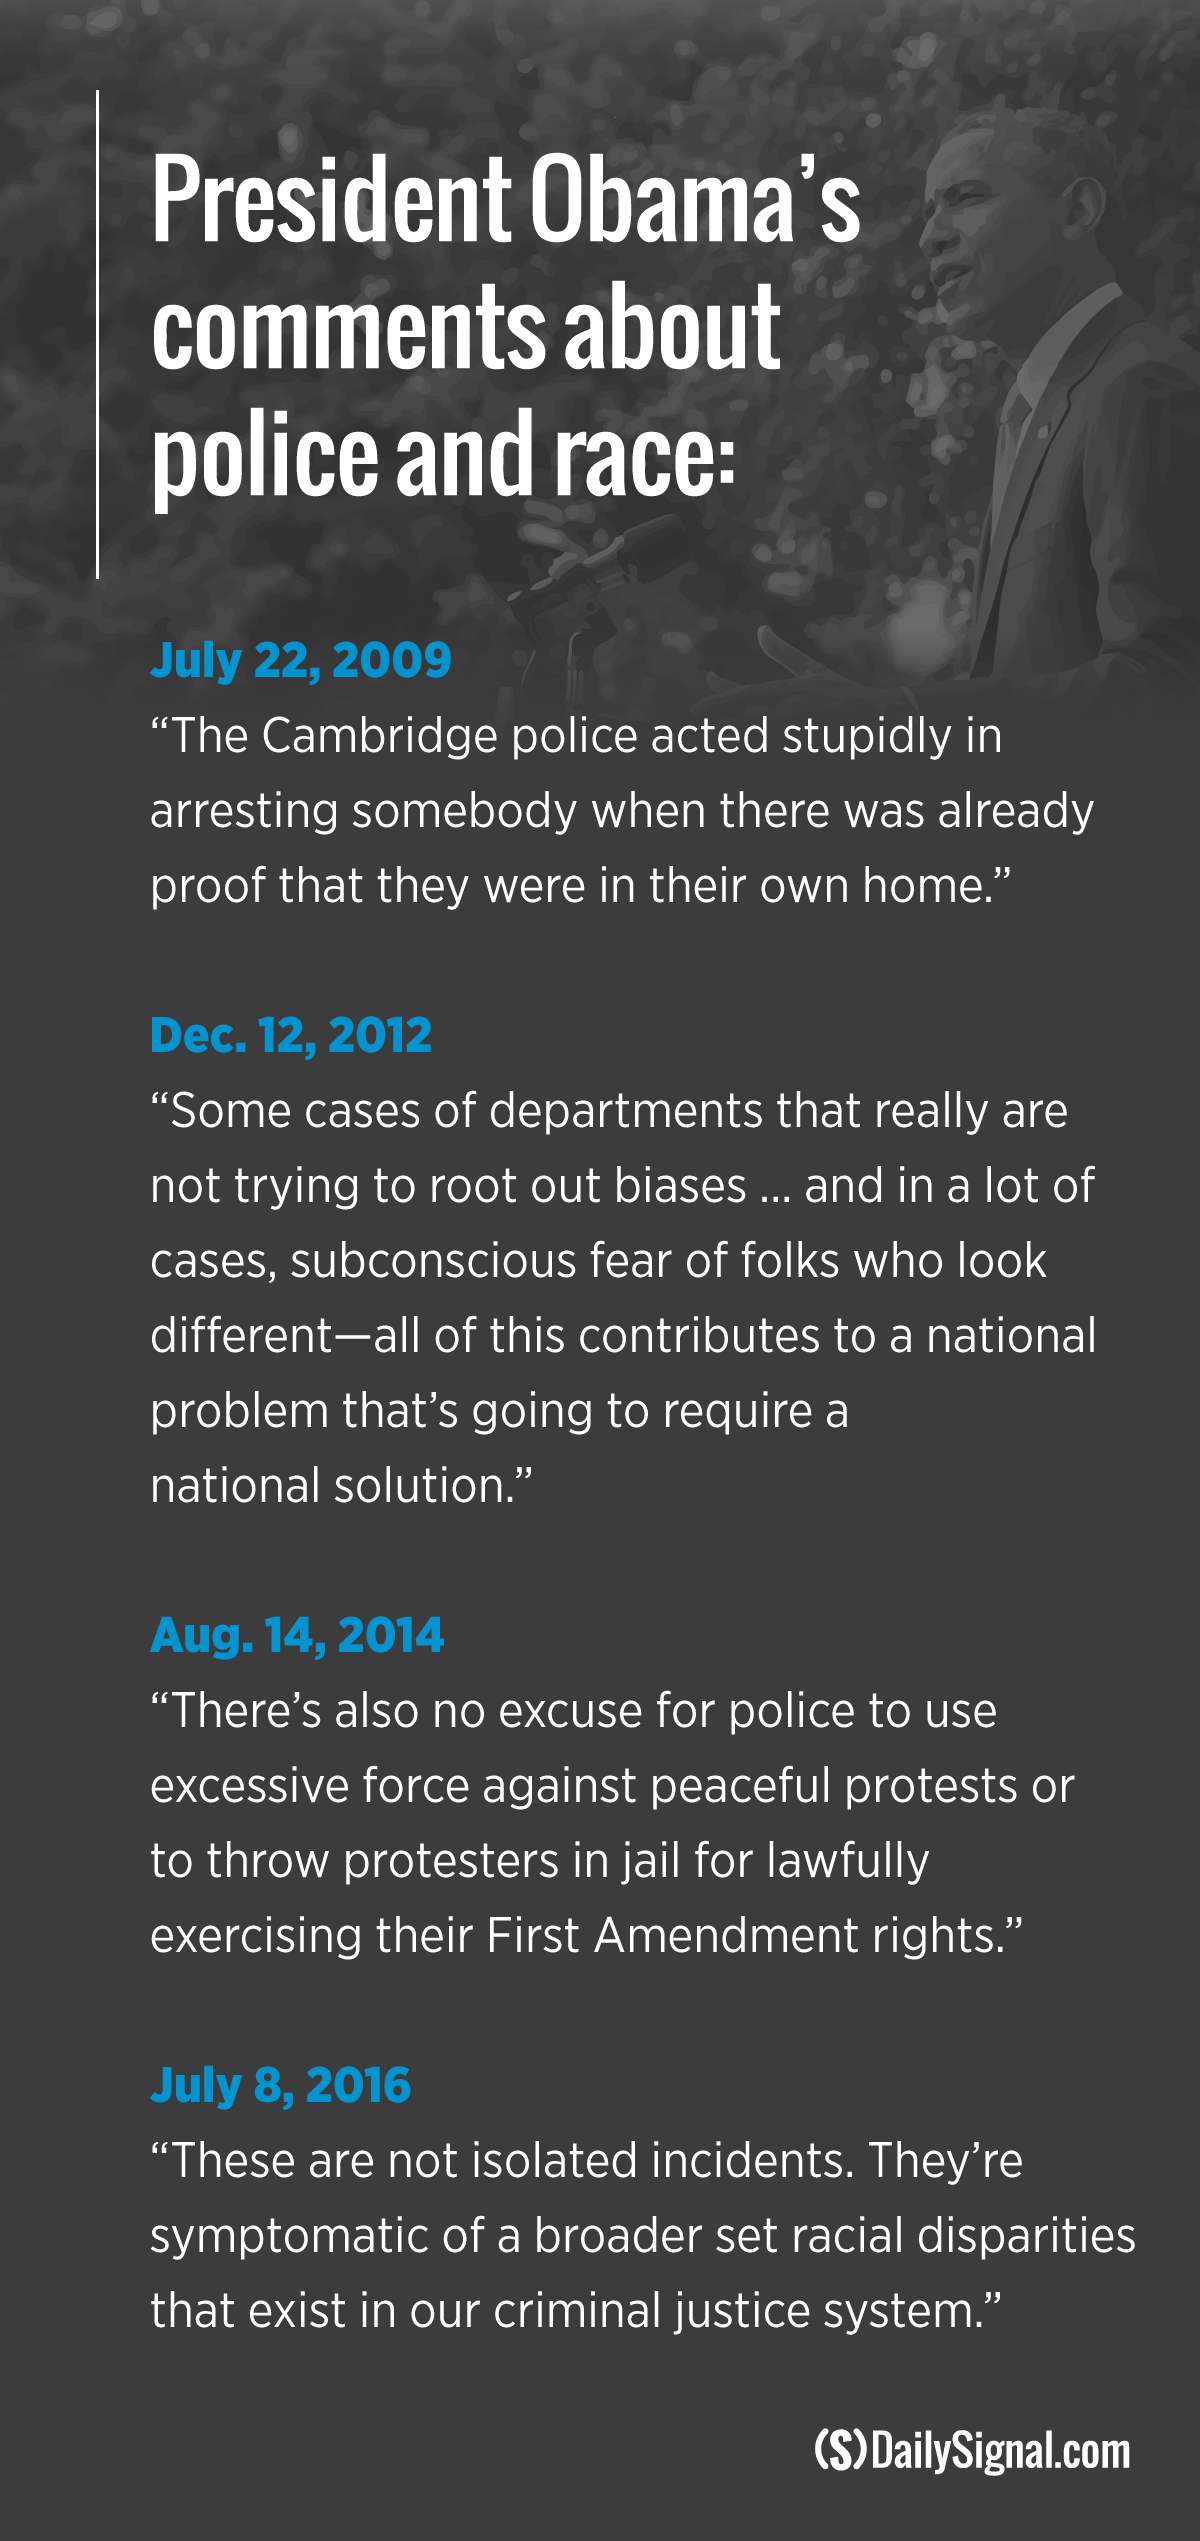 police groups question obama s support 160712 obama comments v2 anti police narrative